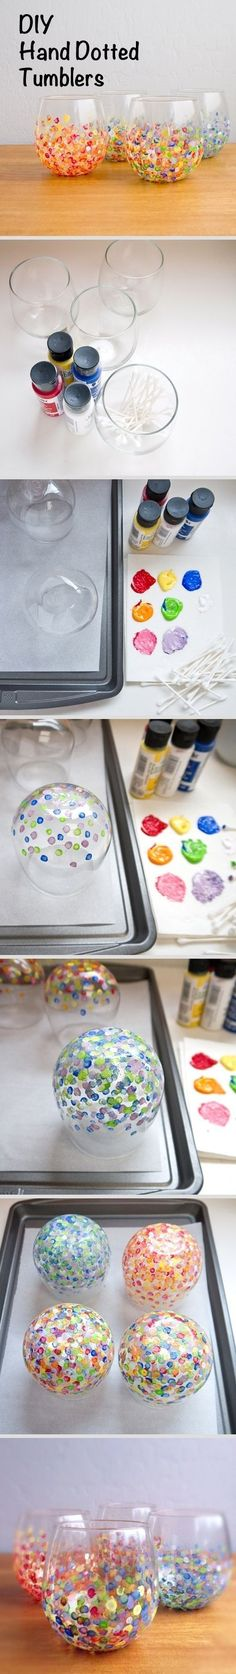 How to Paint on Glass - easy tutorial shows how to spruce up plain glassware - via Popsugar